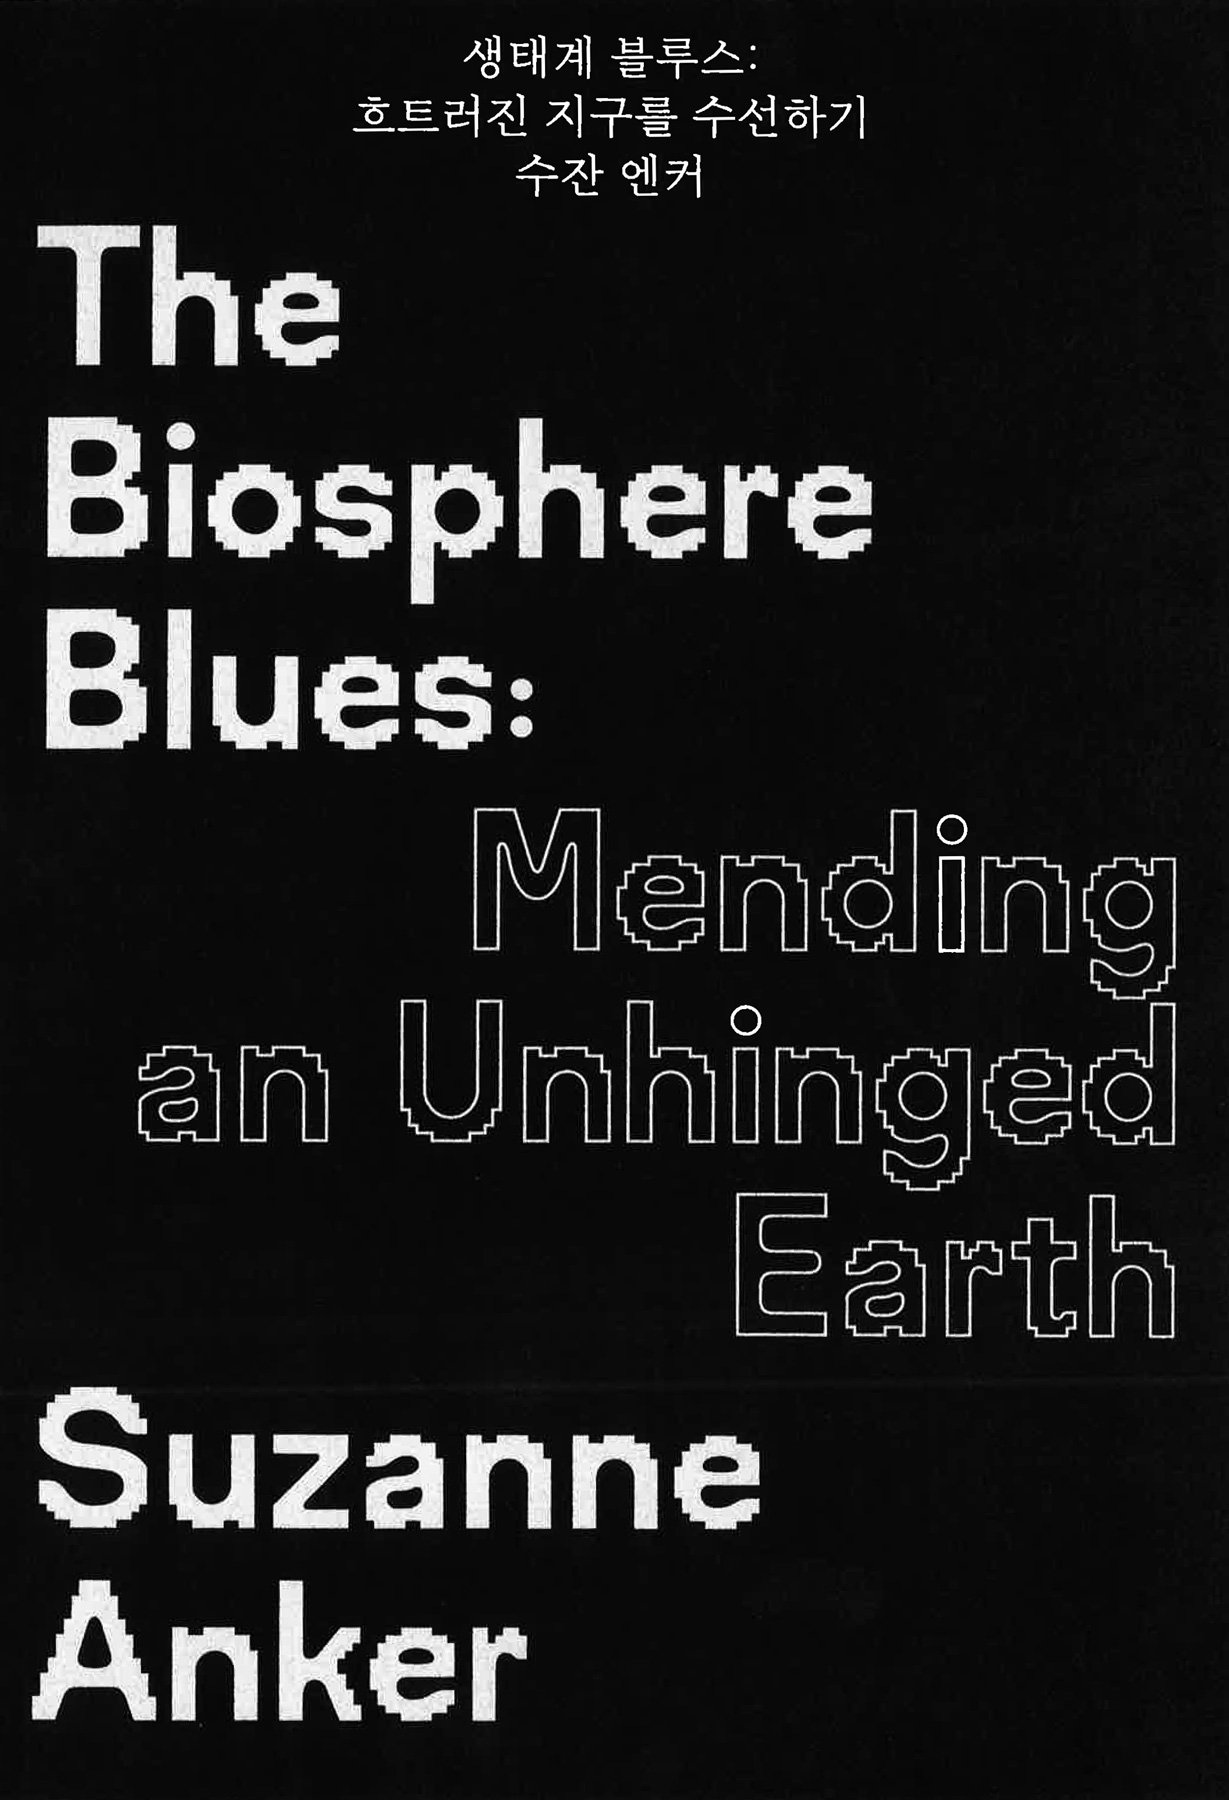 The Biosphere Blues: Mending and Unhinged Earth